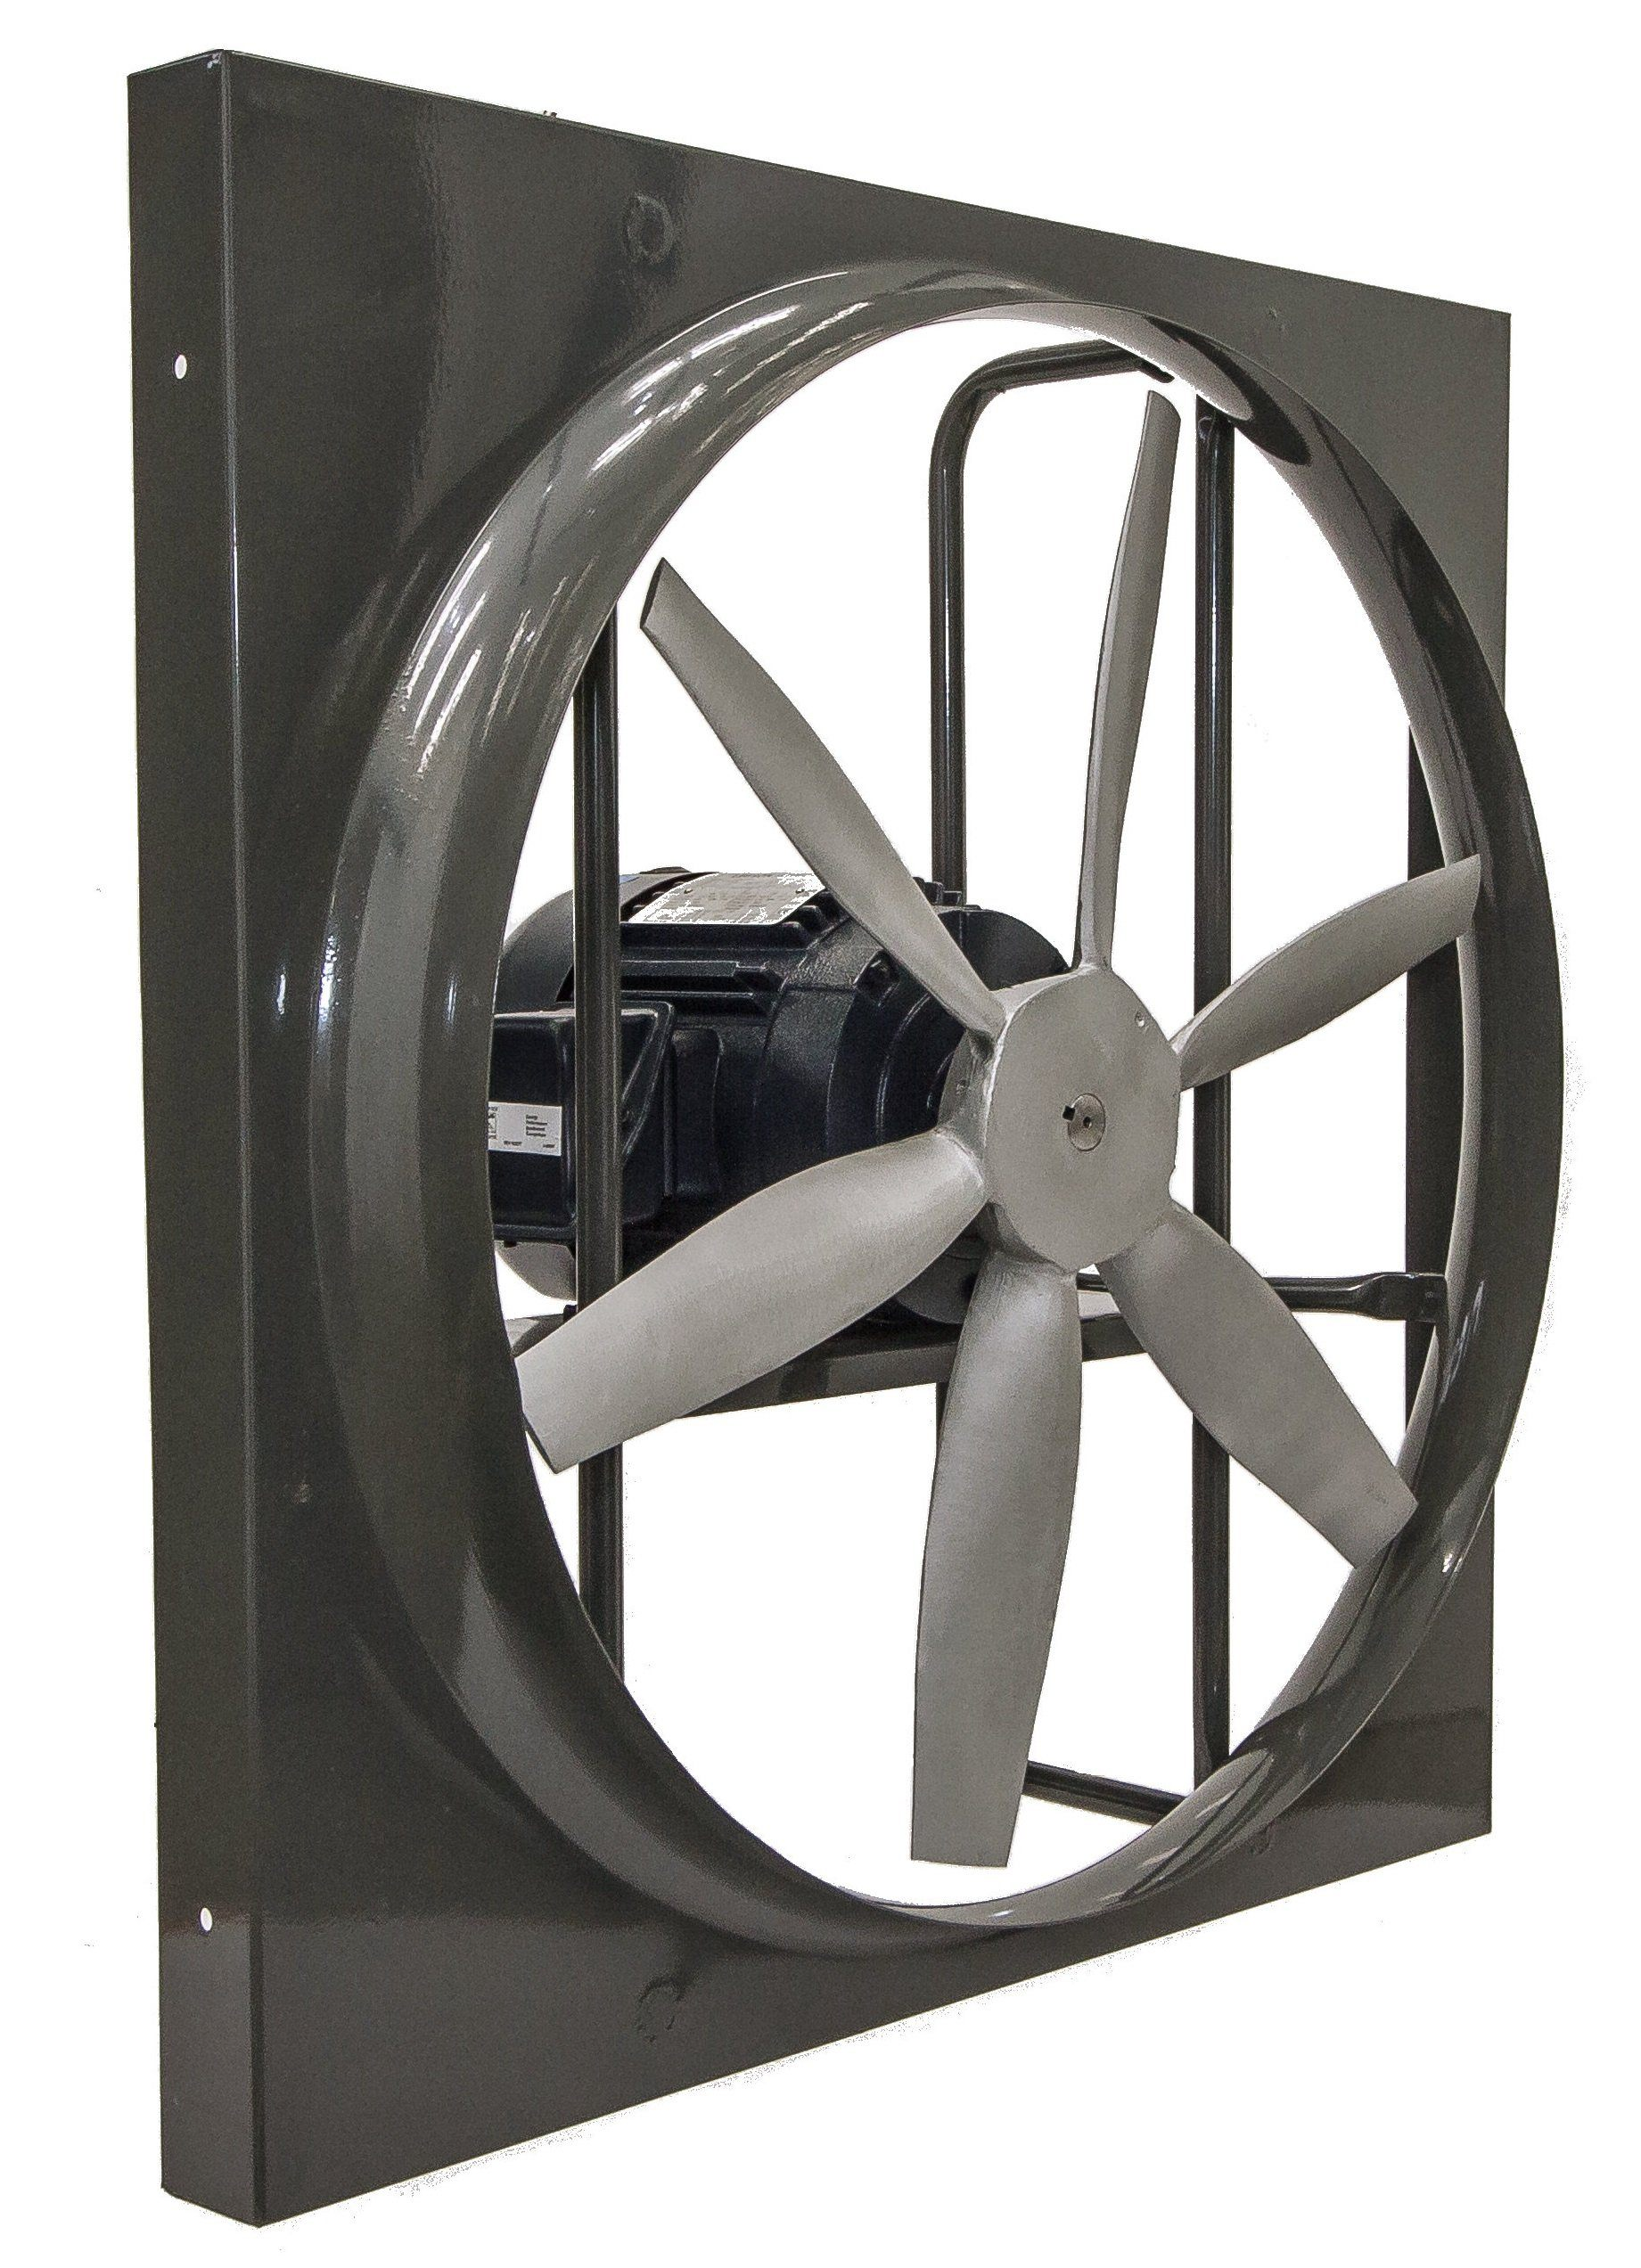 explosion-proof-fans-and-blowers-explosion-proof-panel-wall-supply-fans.jpg